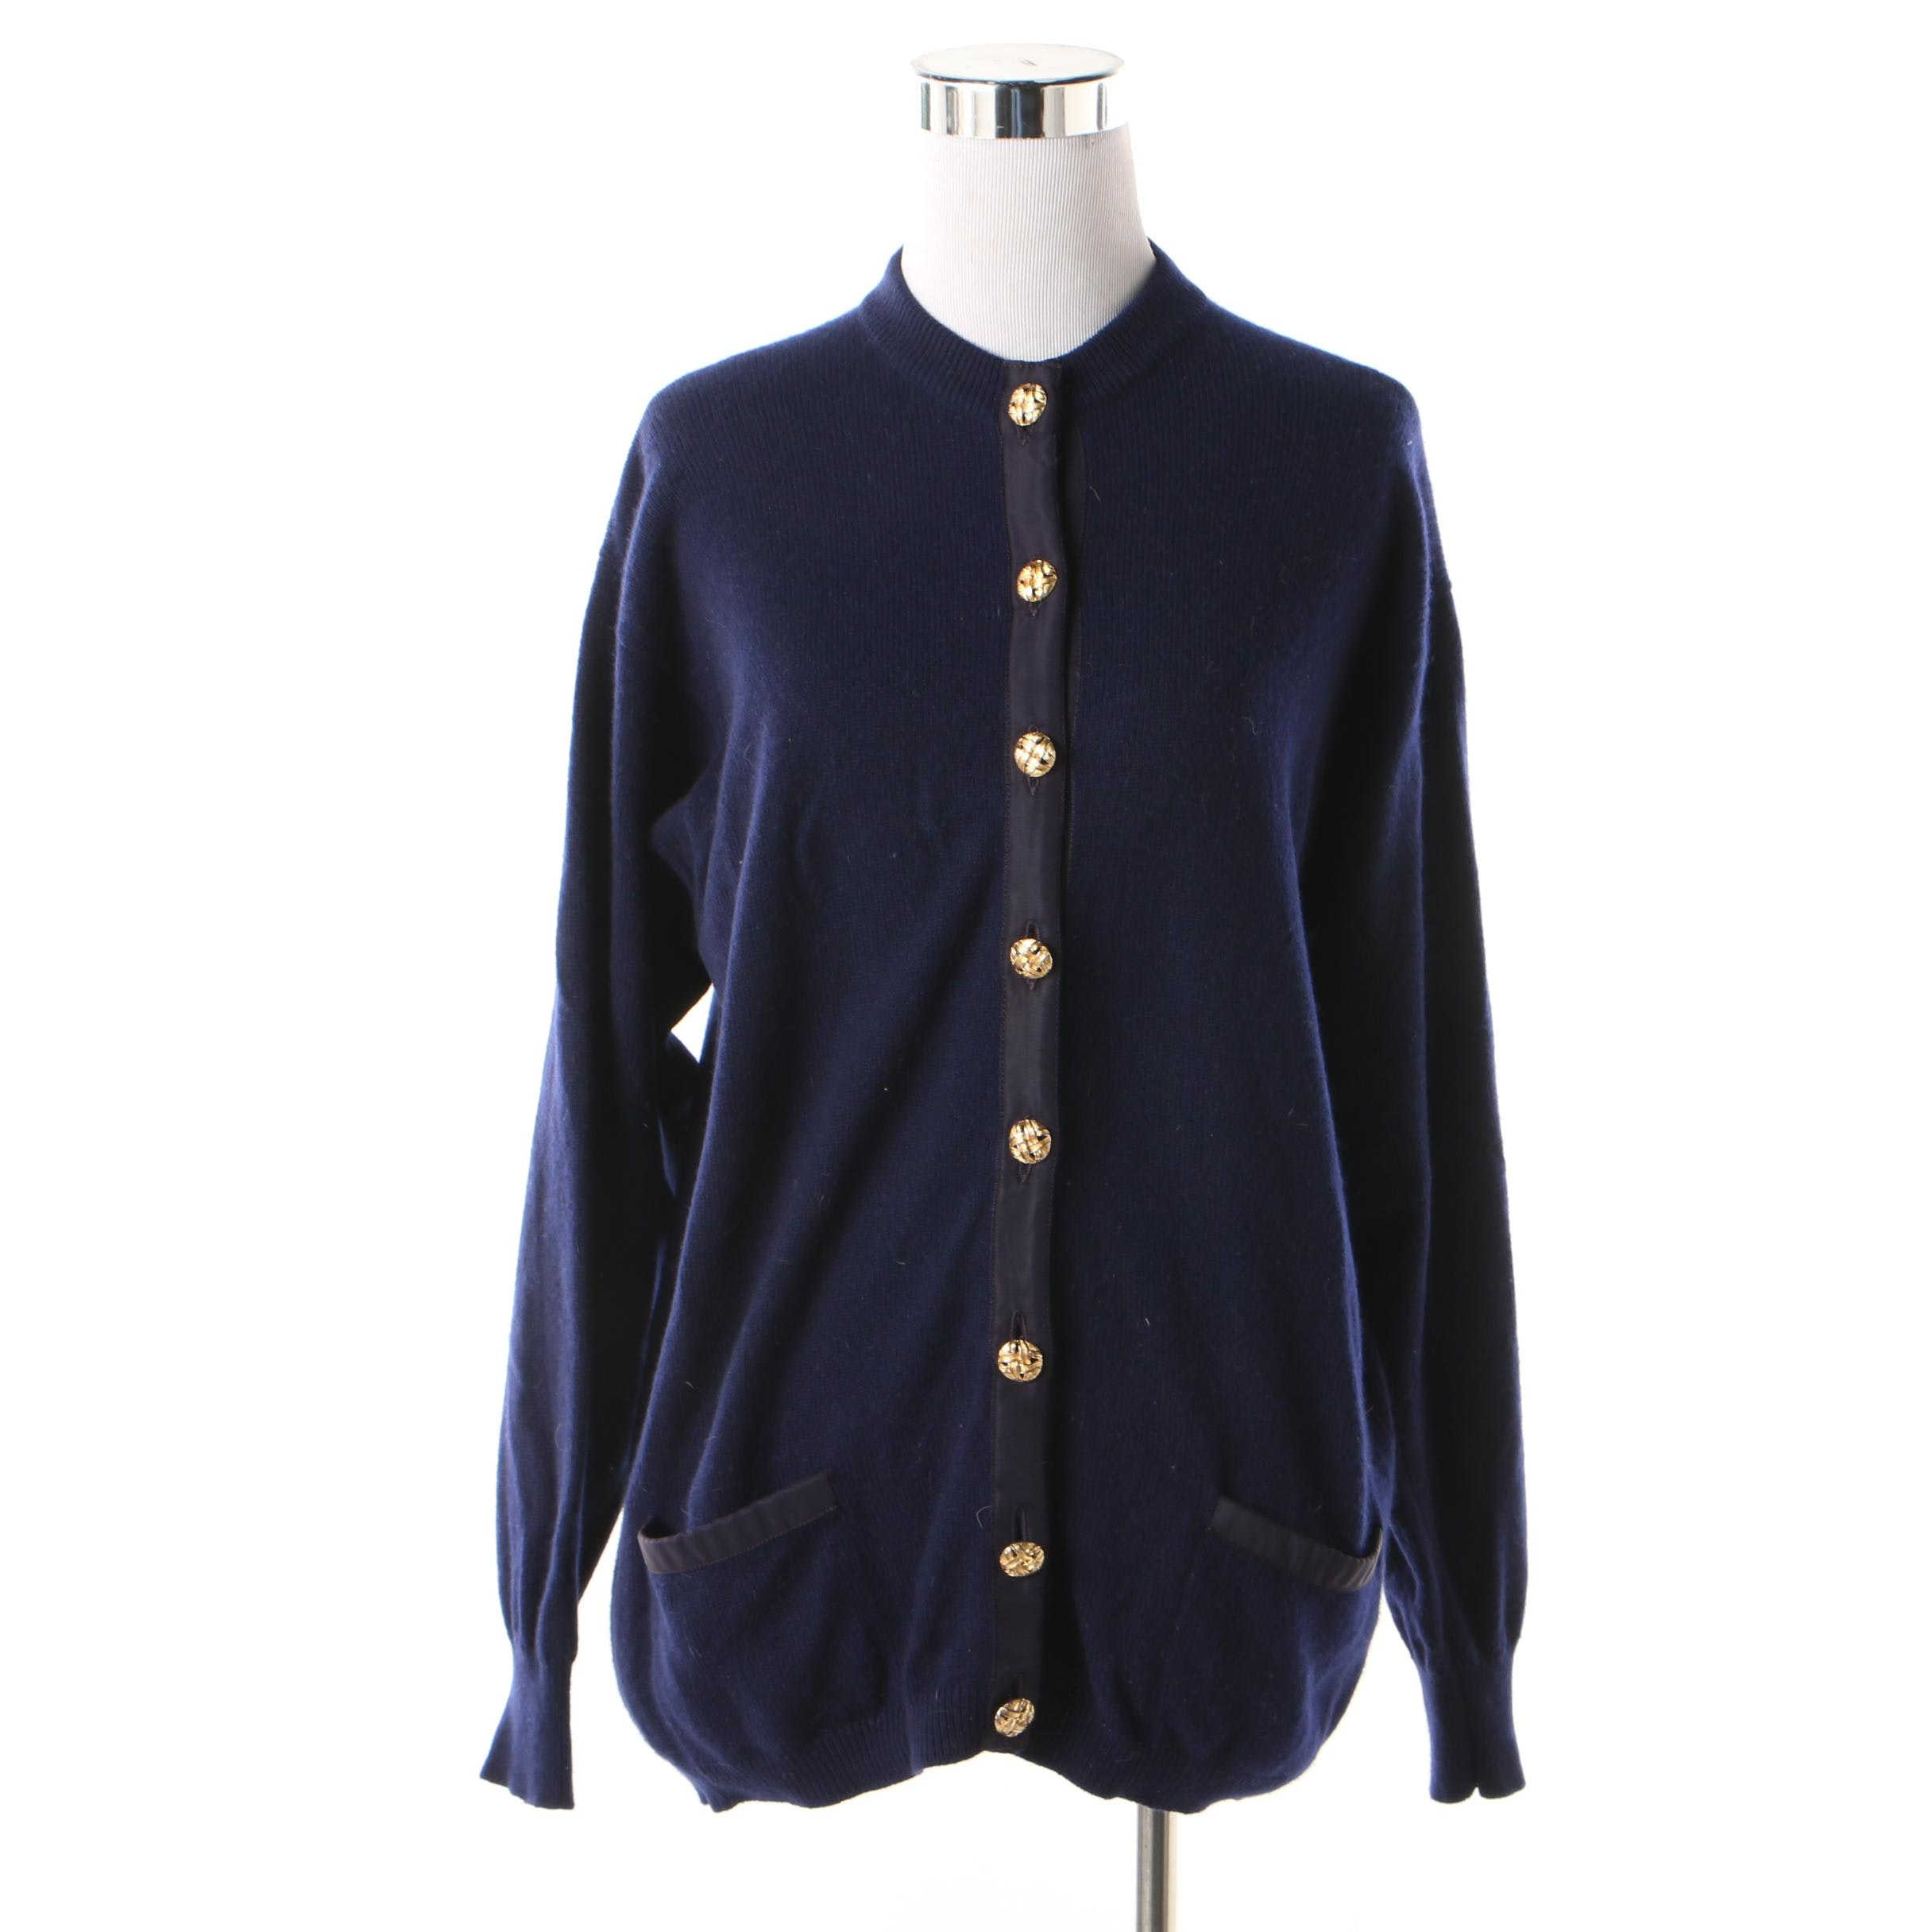 Women's Burberrys Navy Blue Cashmere Cardigan with Patch Pockets, 1980s